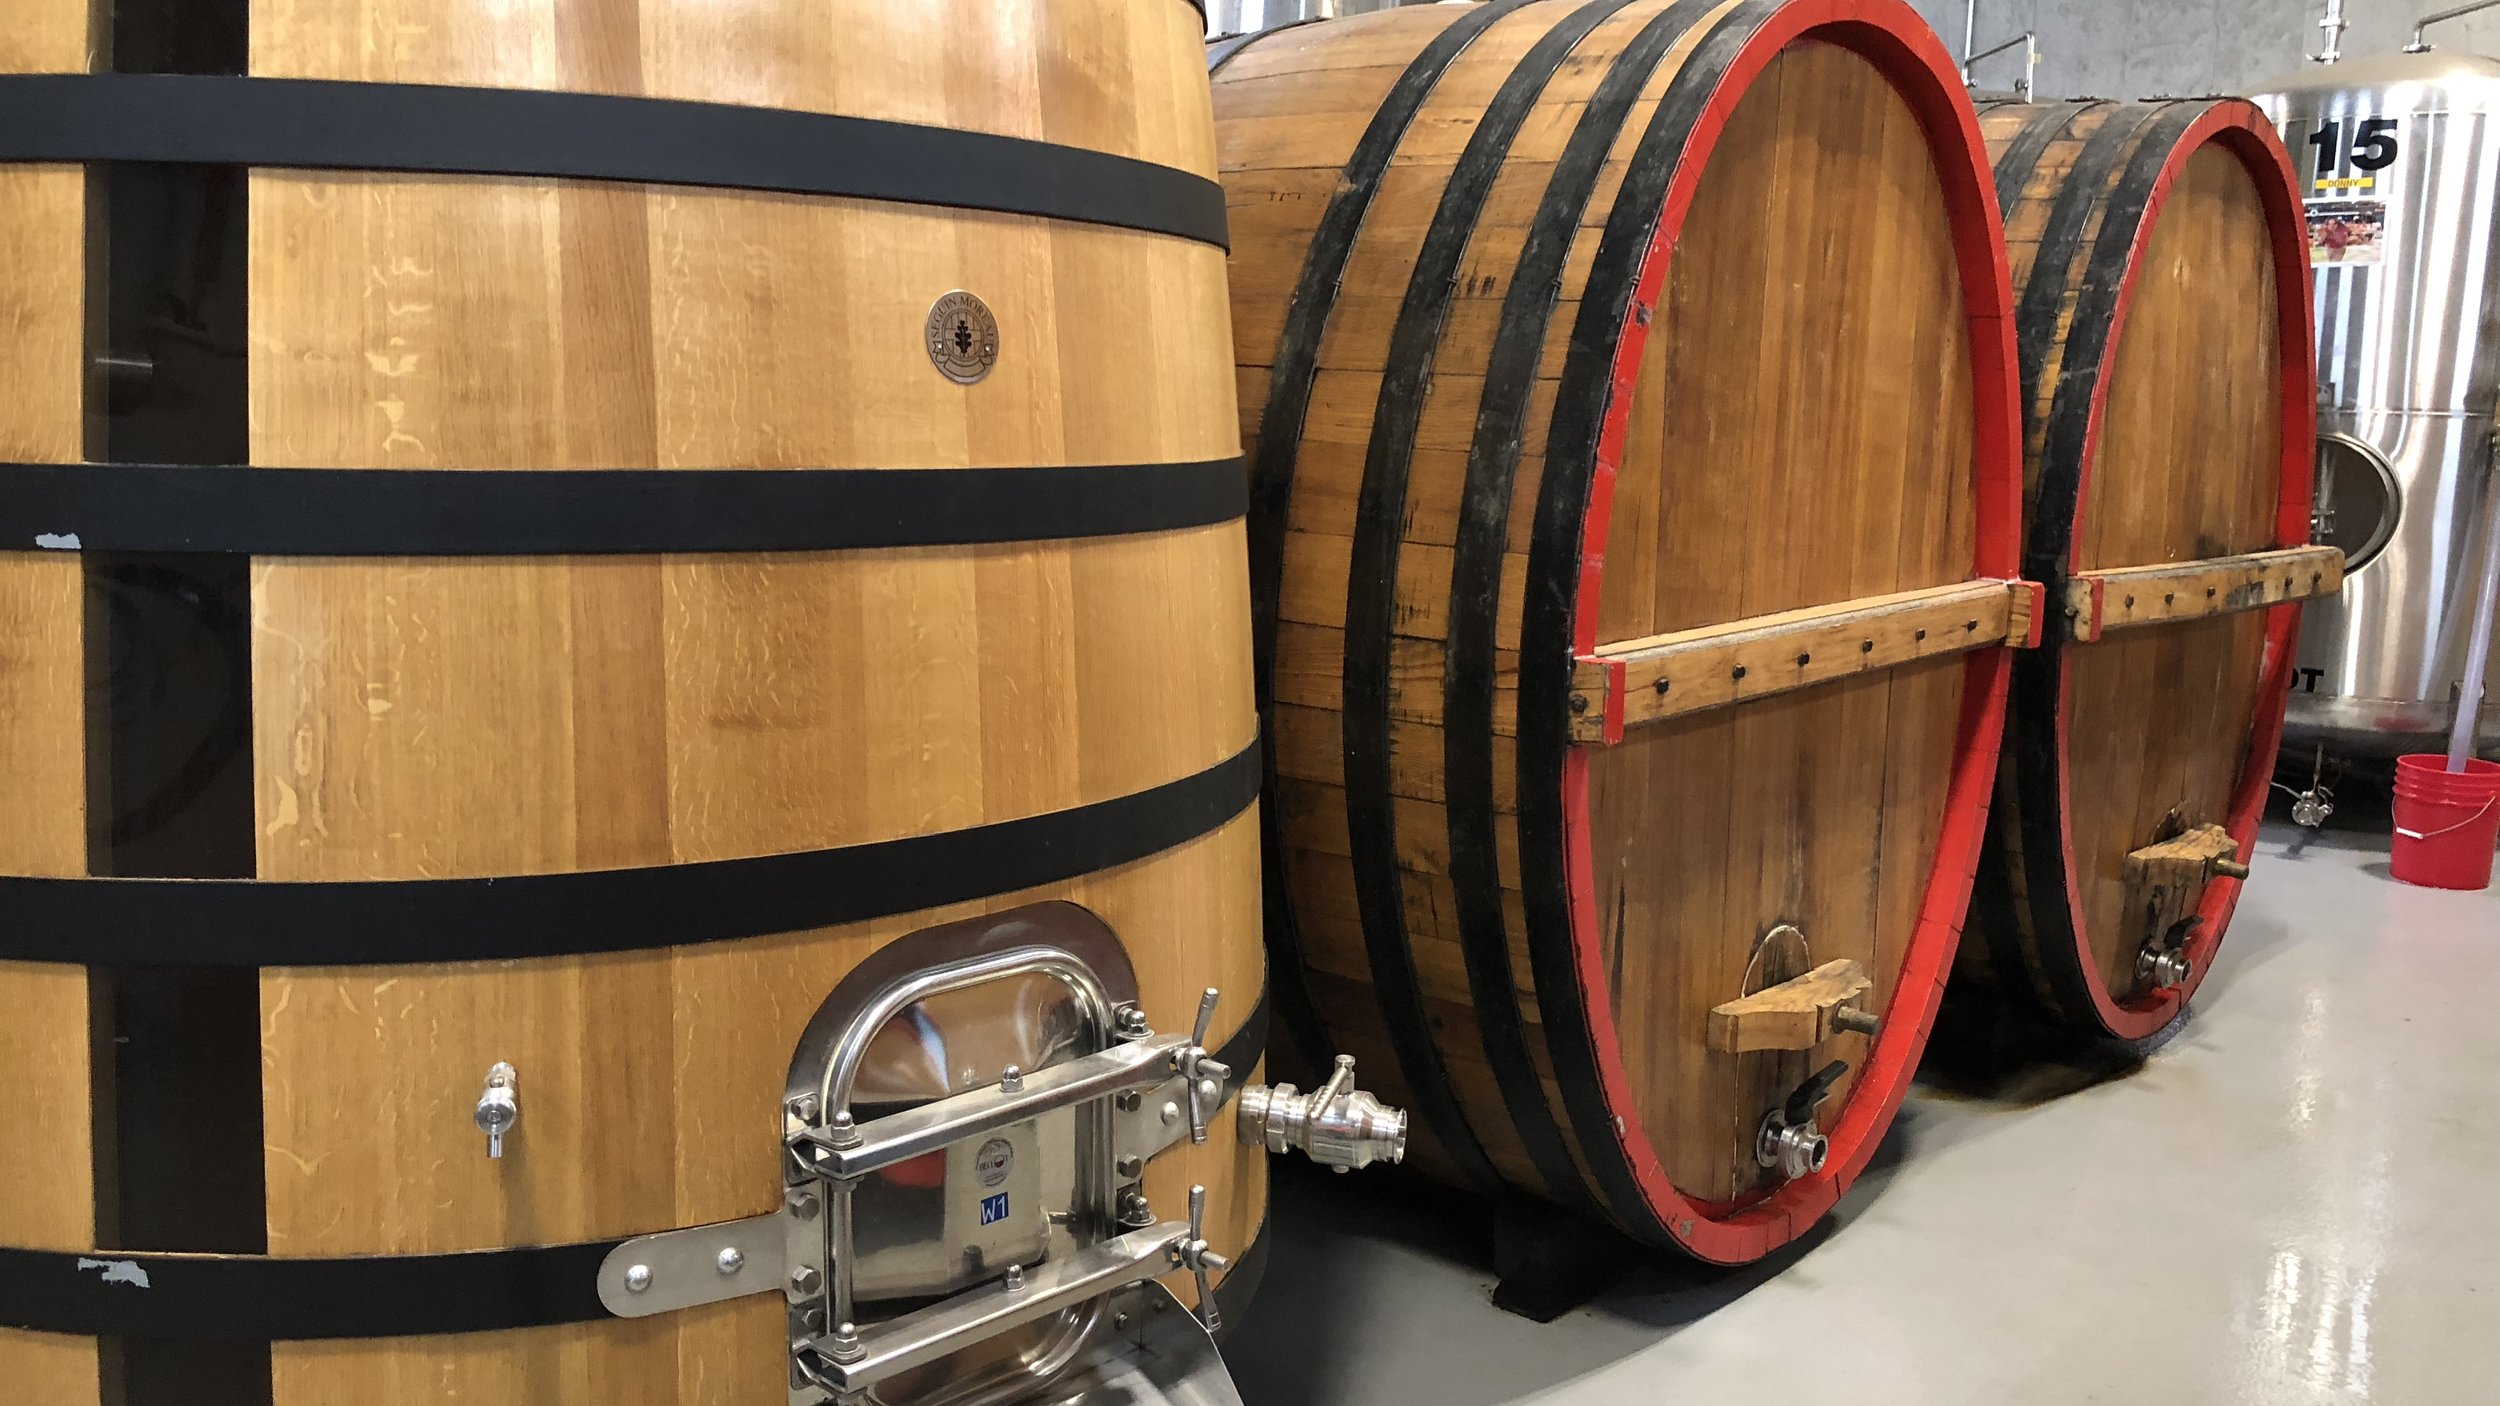 """The Deschutes barrel room, which includes hundreds of wine casks in addition to these foeders, is known around the brewery as """"Oakland"""" or """"Wood World."""""""